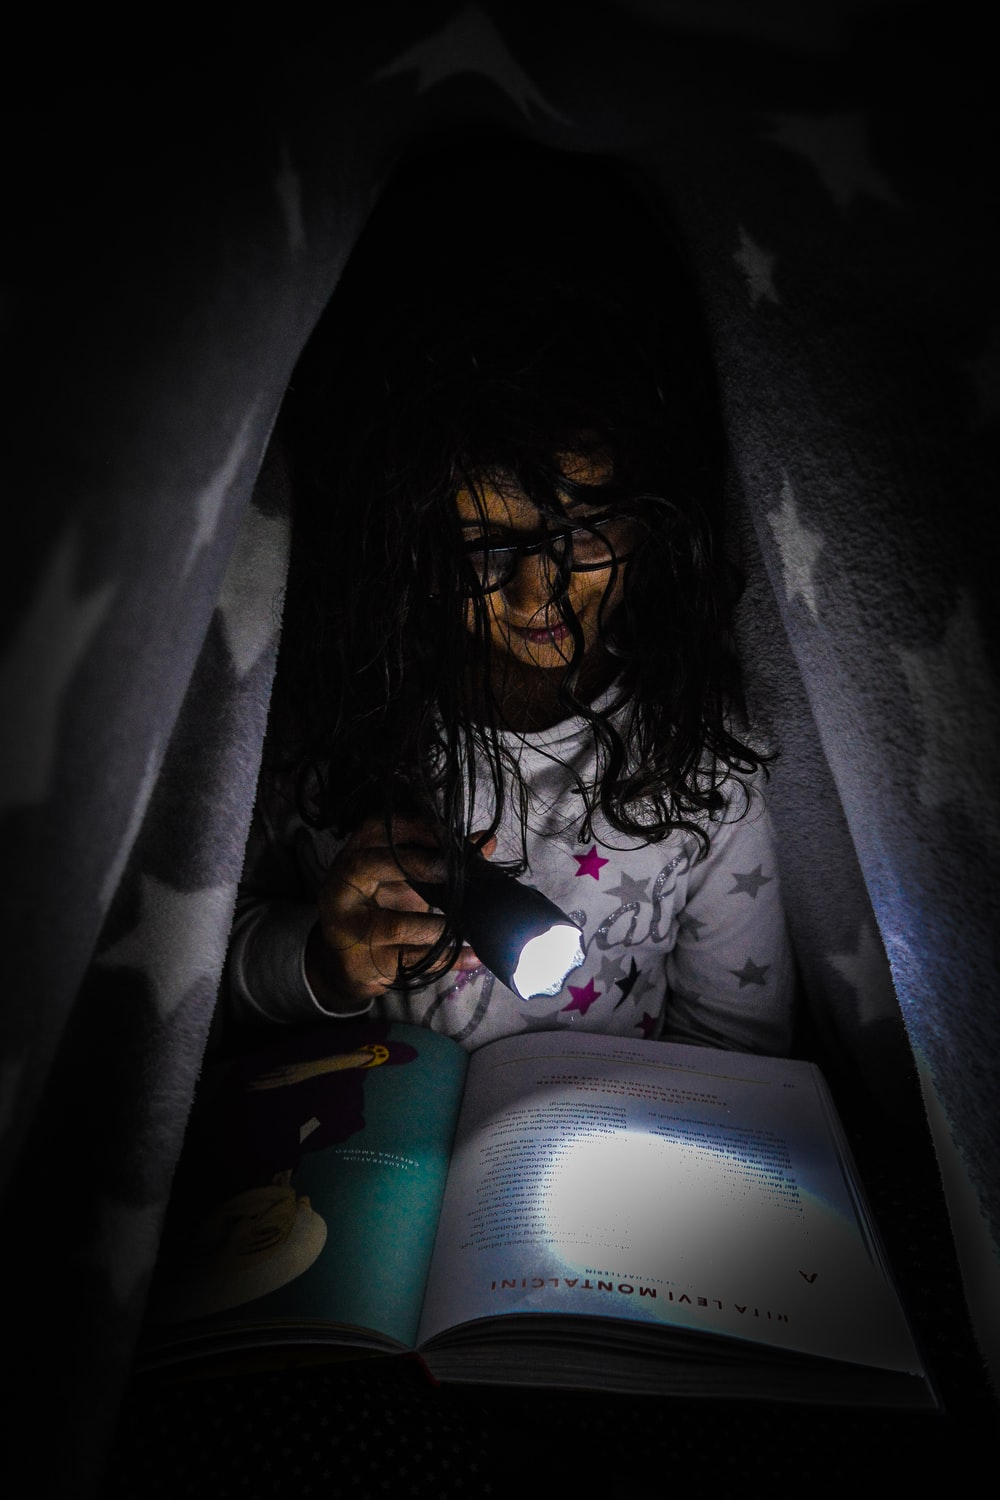 girl under the blanket reading by flashlight